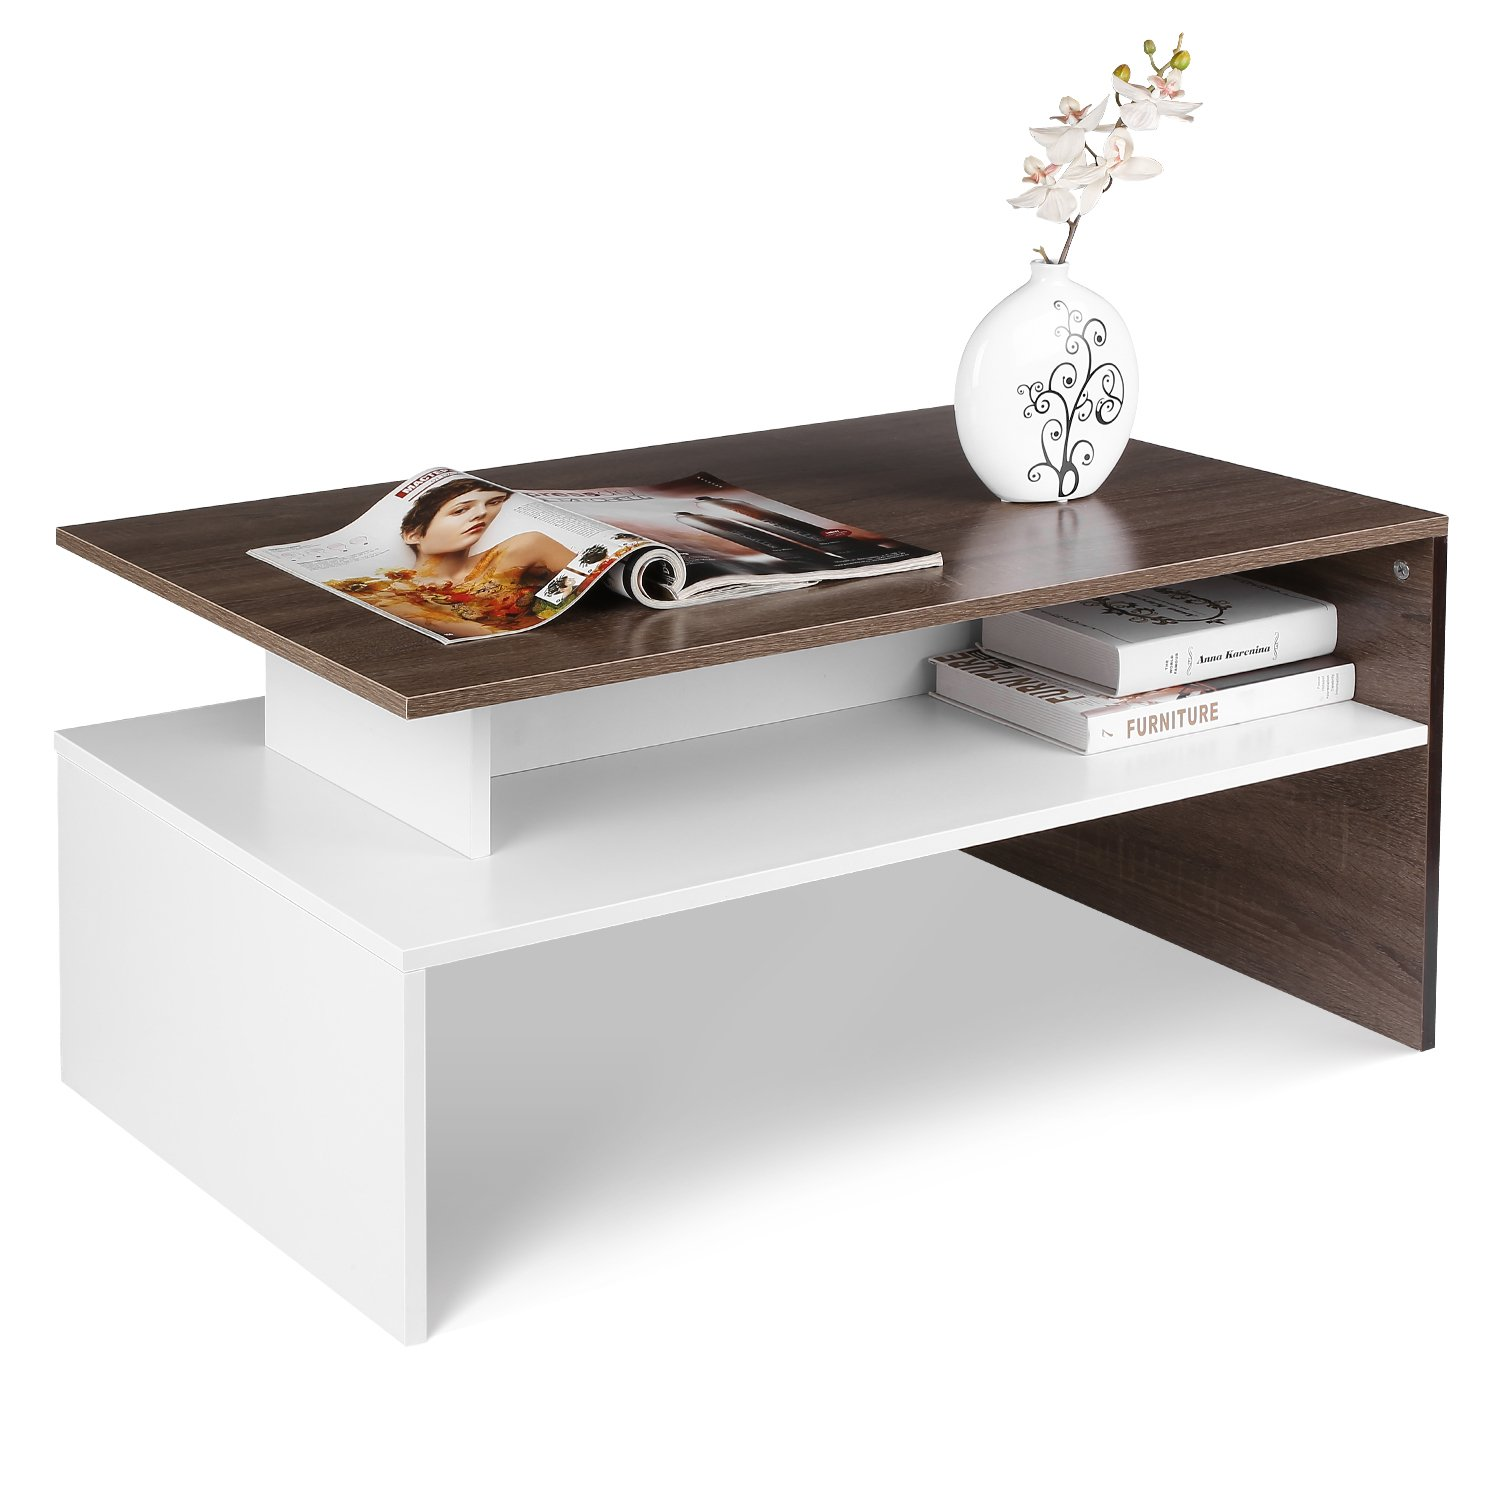 HOMFA Modern Console Table Coffee Table 2-Tier Rectangular Storage Open  Shelf Table for Living Room Sitting Room Home Furniture — Catalog Furniture